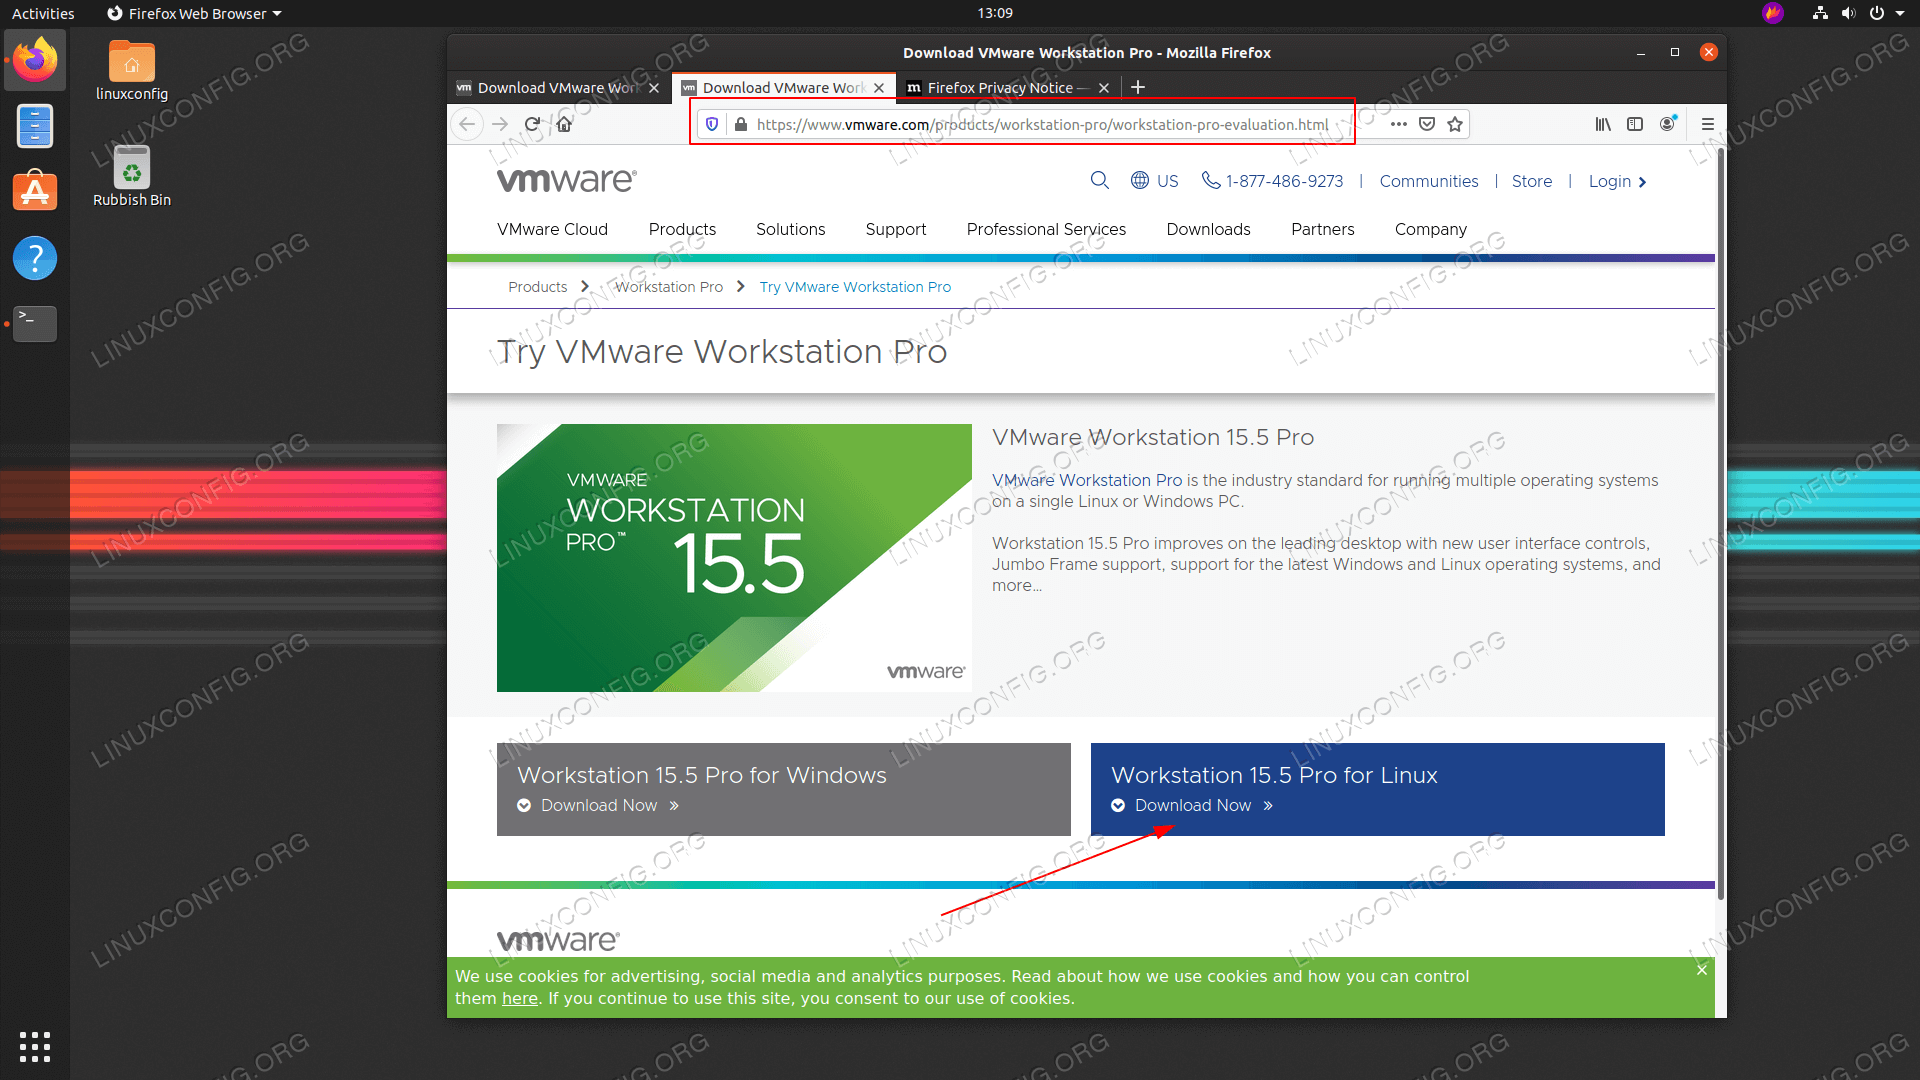 download the VMware Workstation PRO for linux